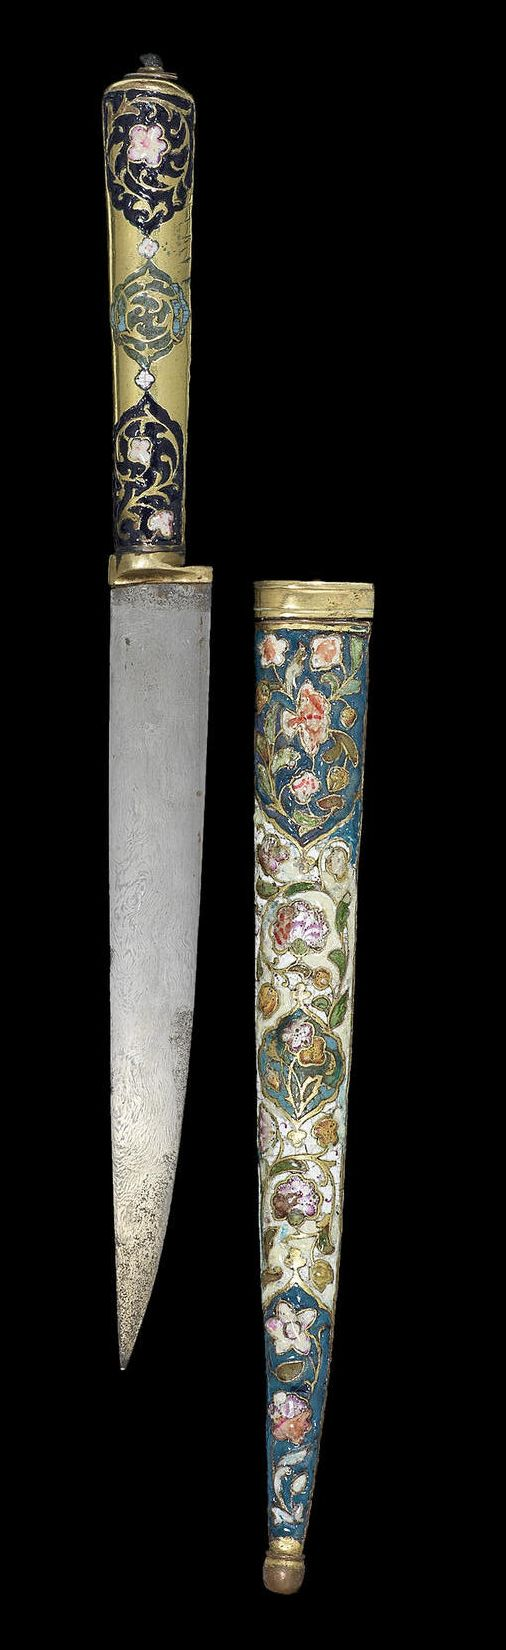 Late-Ottoman enamelled and inset gilt copper 'bıçak' (knife-like dagger). End of 18th Century.